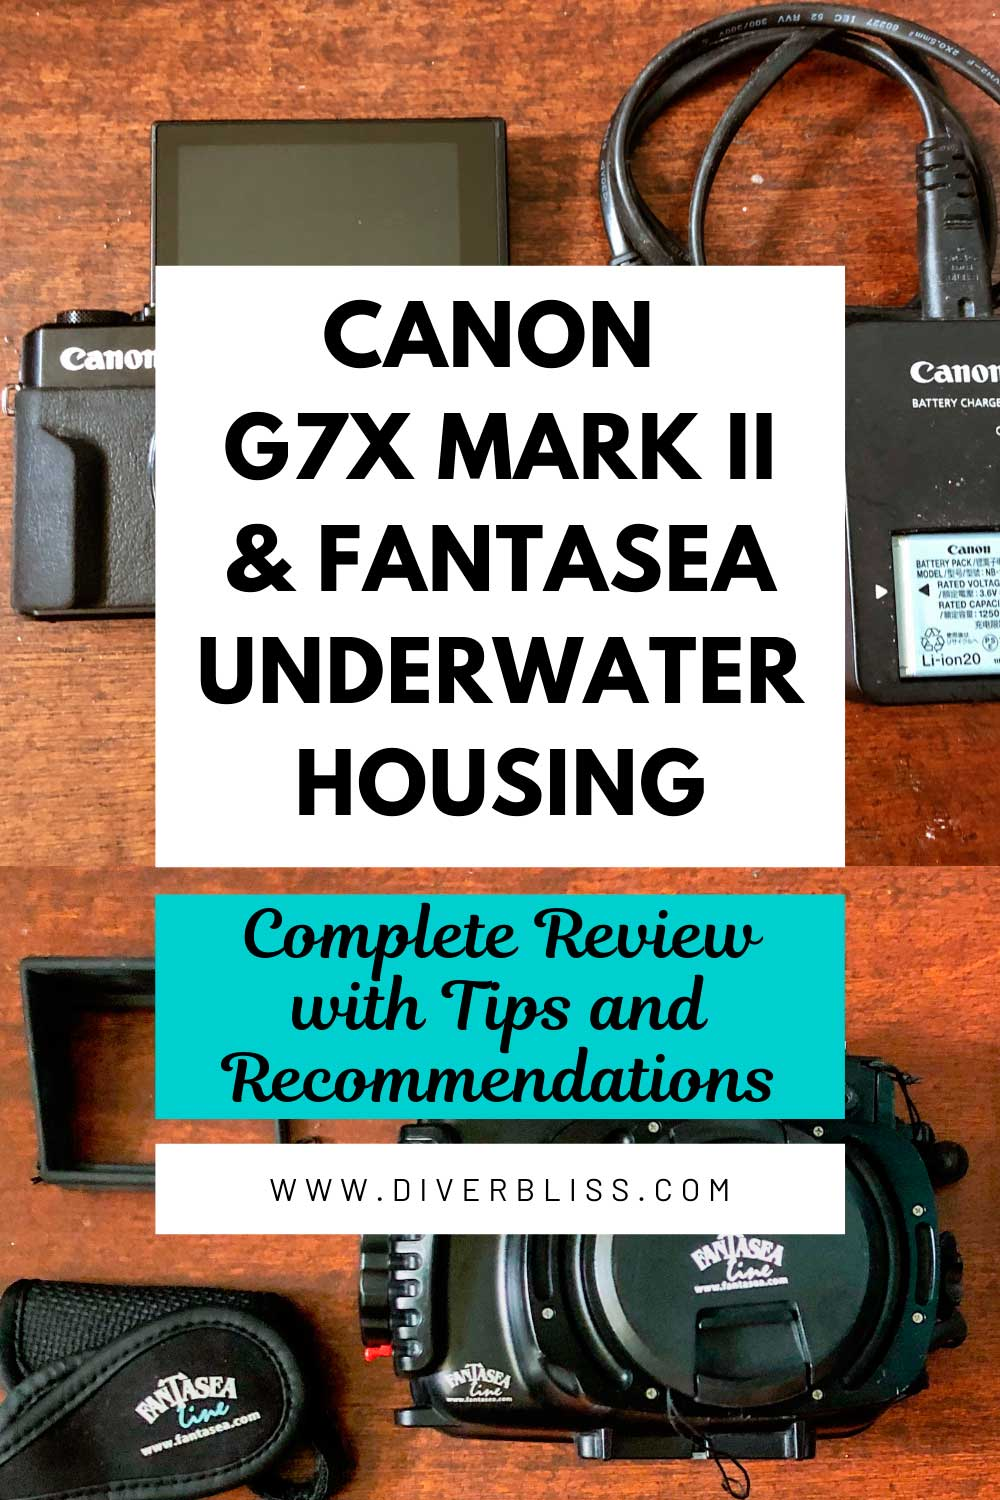 Canon G7x Mark II Underwater Camera + Fantasea Housing Review and Recommendations Pin